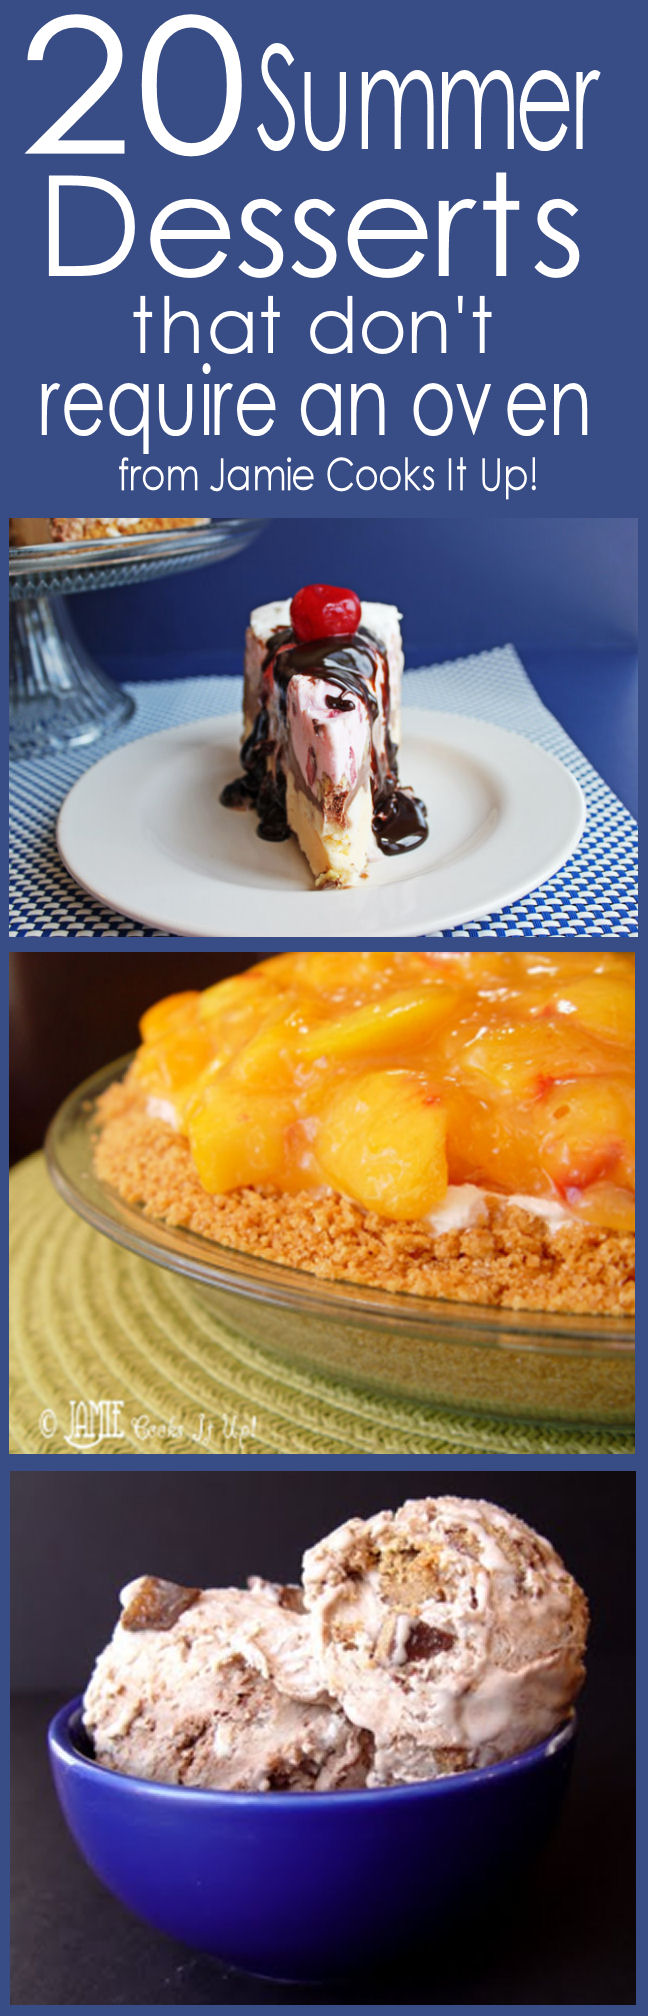 20 Summer Desserts That Don't Require an Oven